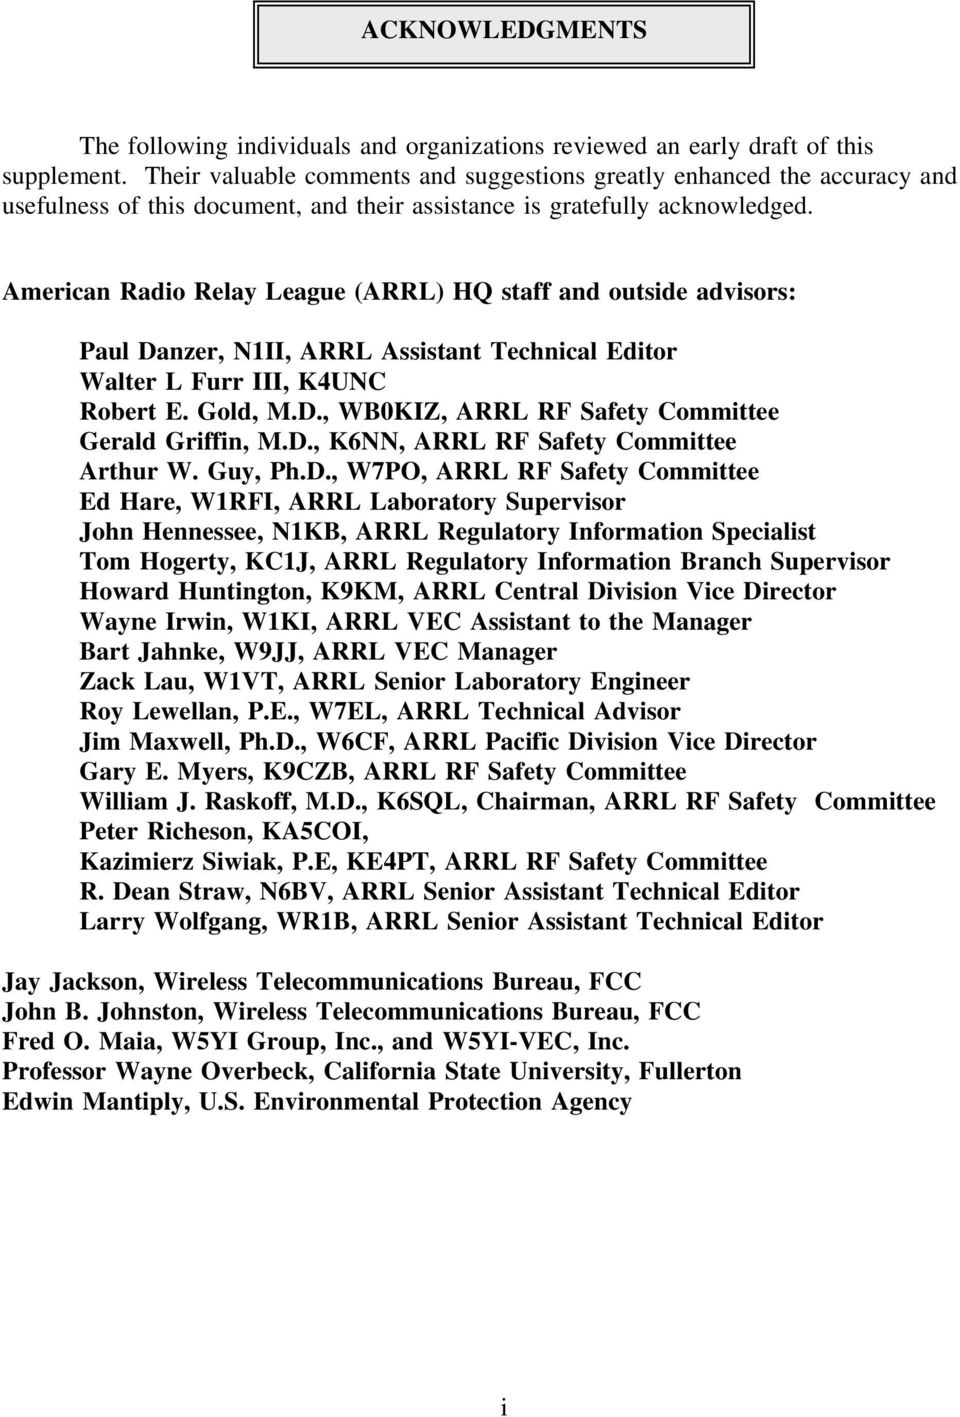 American Radio Relay League (ARRL) HQ staff and outside advisors: Paul Danzer, N1II, ARRL Assistant Technical Editor Walter L Furr III, K4UNC Robert E. Gold, M.D., WB0KIZ, ARRL RF Safety Committee Gerald Griffin, M.